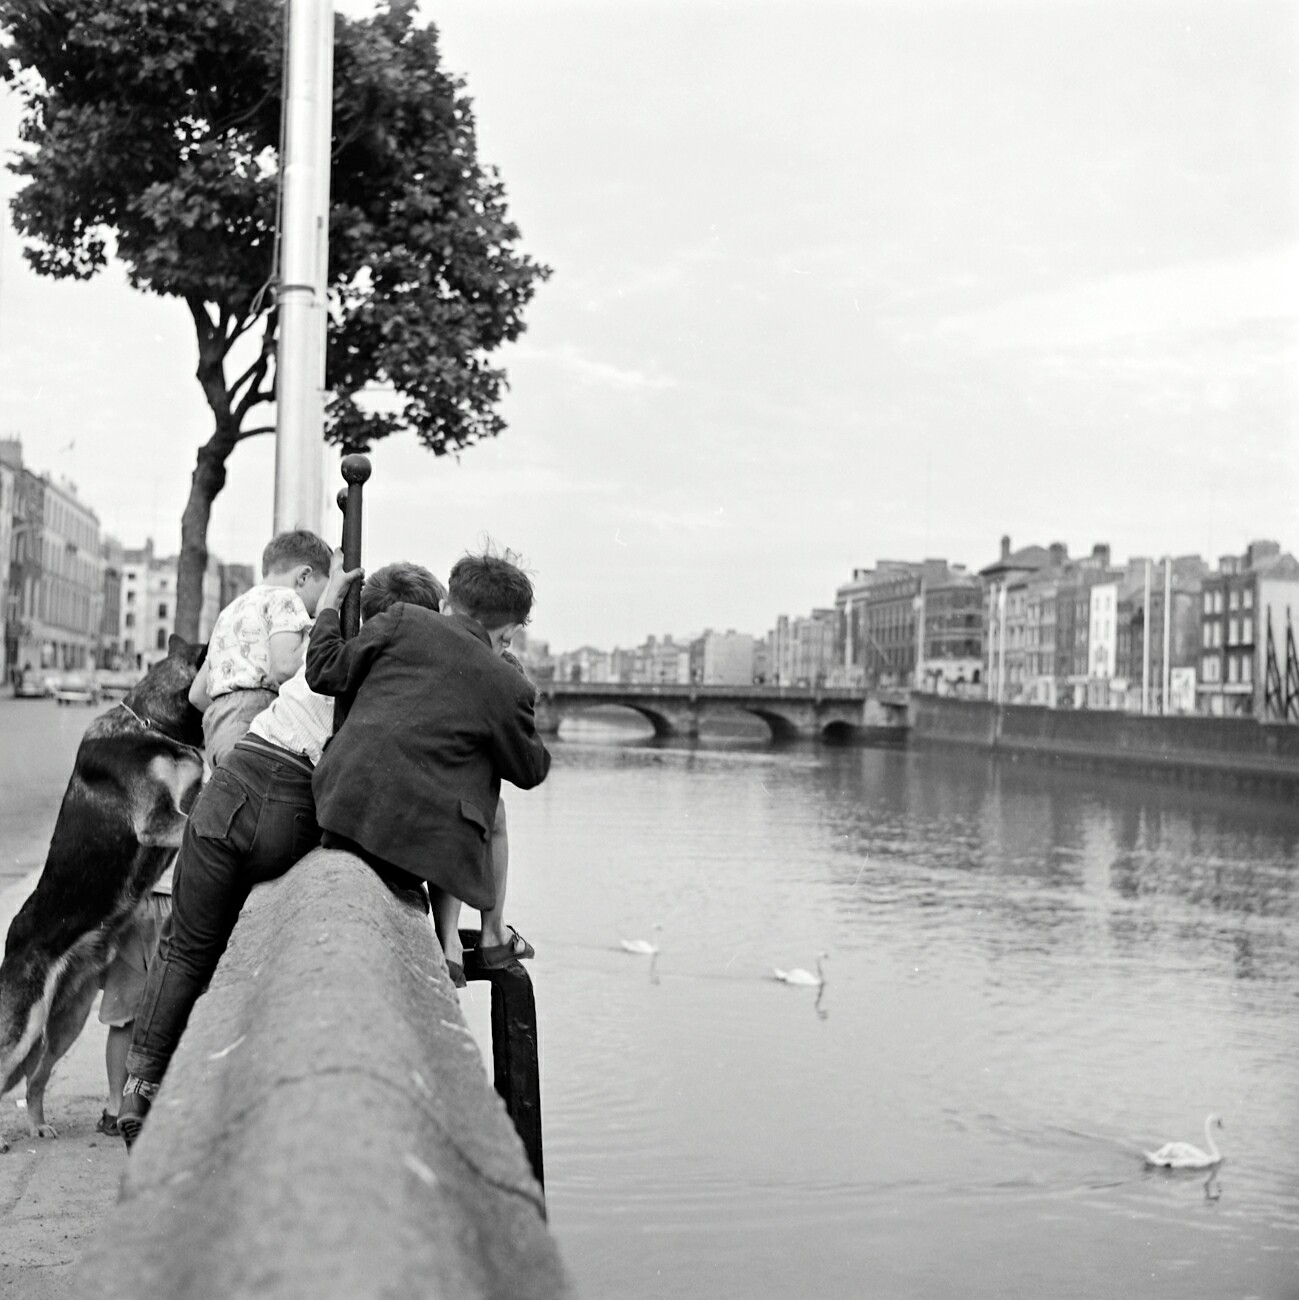 Ireland 1960s, A bunch of fascinated boys, and their equally engaged alsatian dog study something in the River Liffey at Upper Ormond Quay, Dublin. Photographer: Elinor Wiltshire Date: 1964